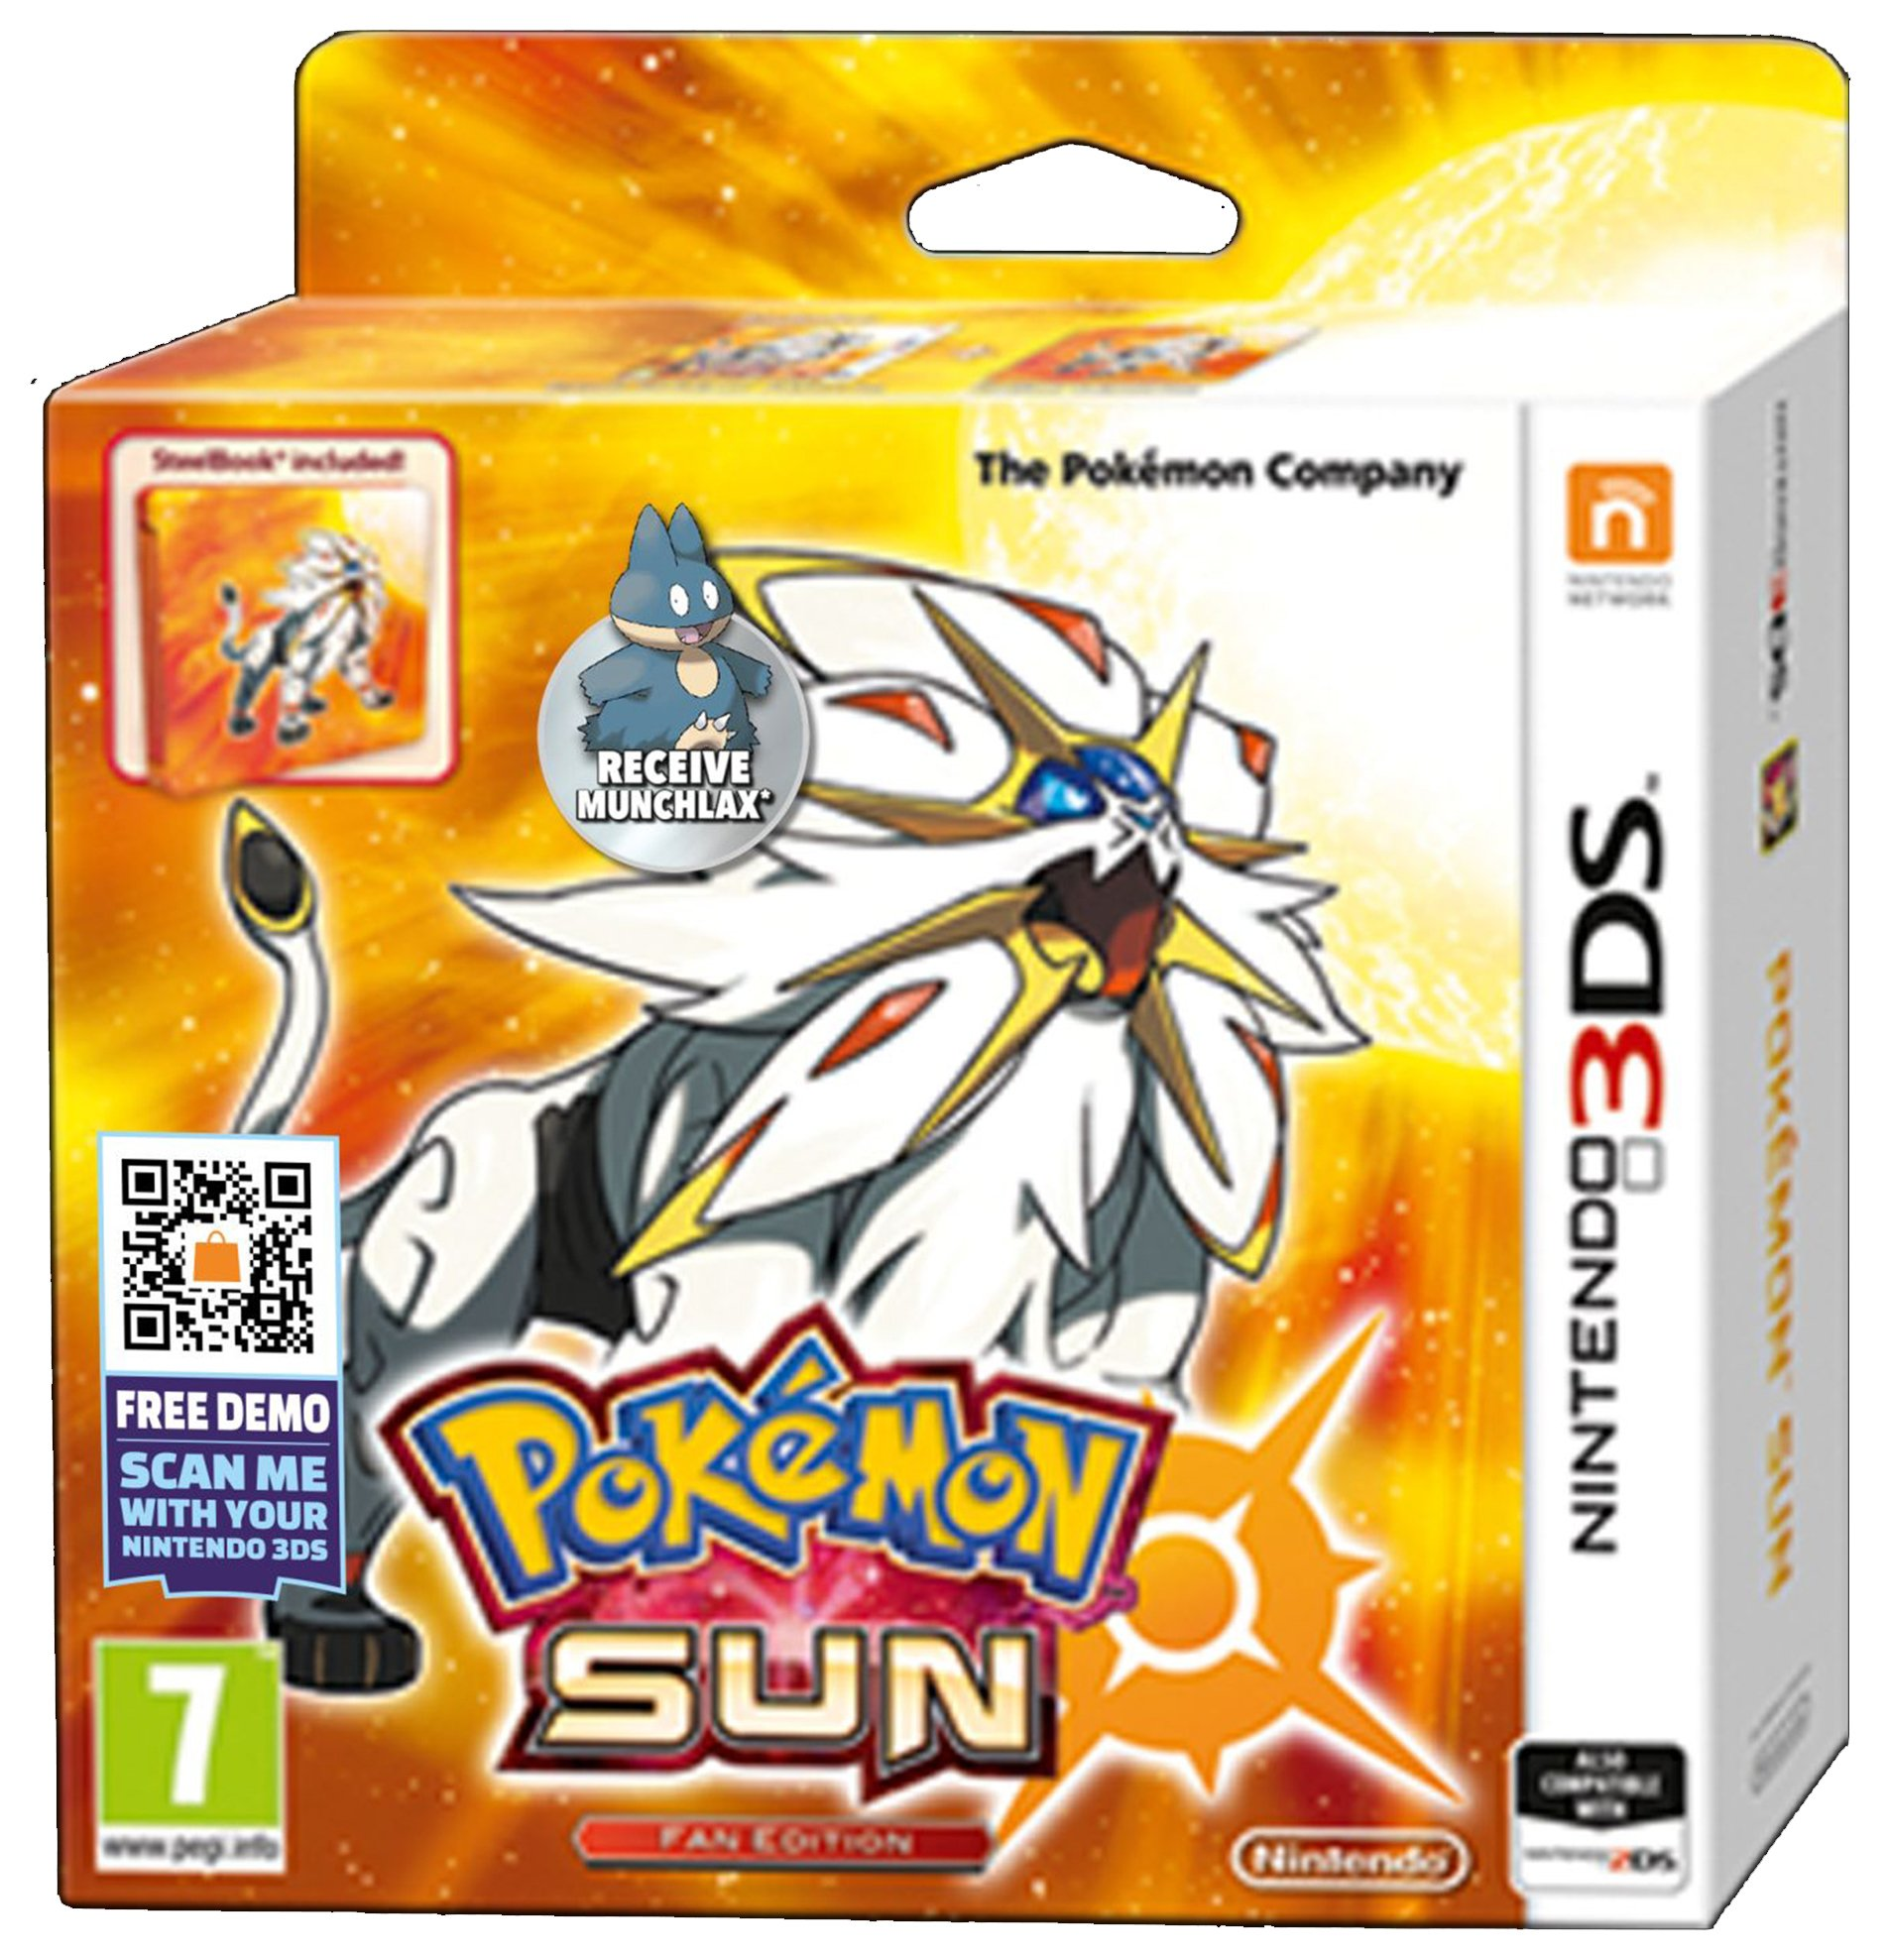 pokemon-sun-with-steel-case-nintendo-3ds-game